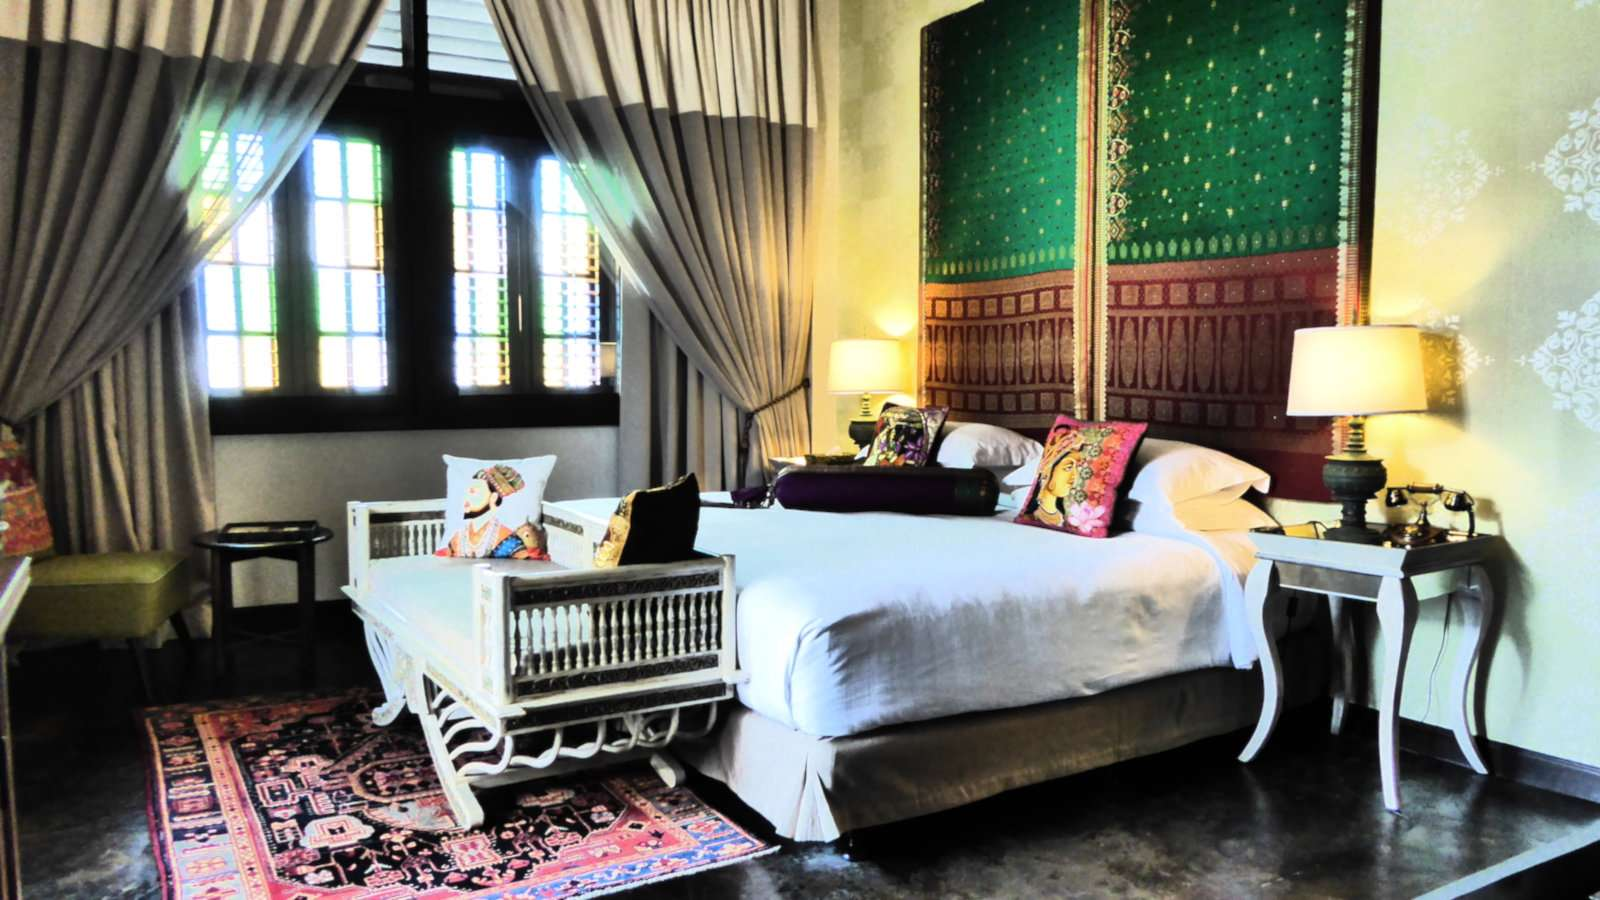 Campbell House is a super romantic and gay friendly spot for couples to stay in Penang if they feel like being spoiled